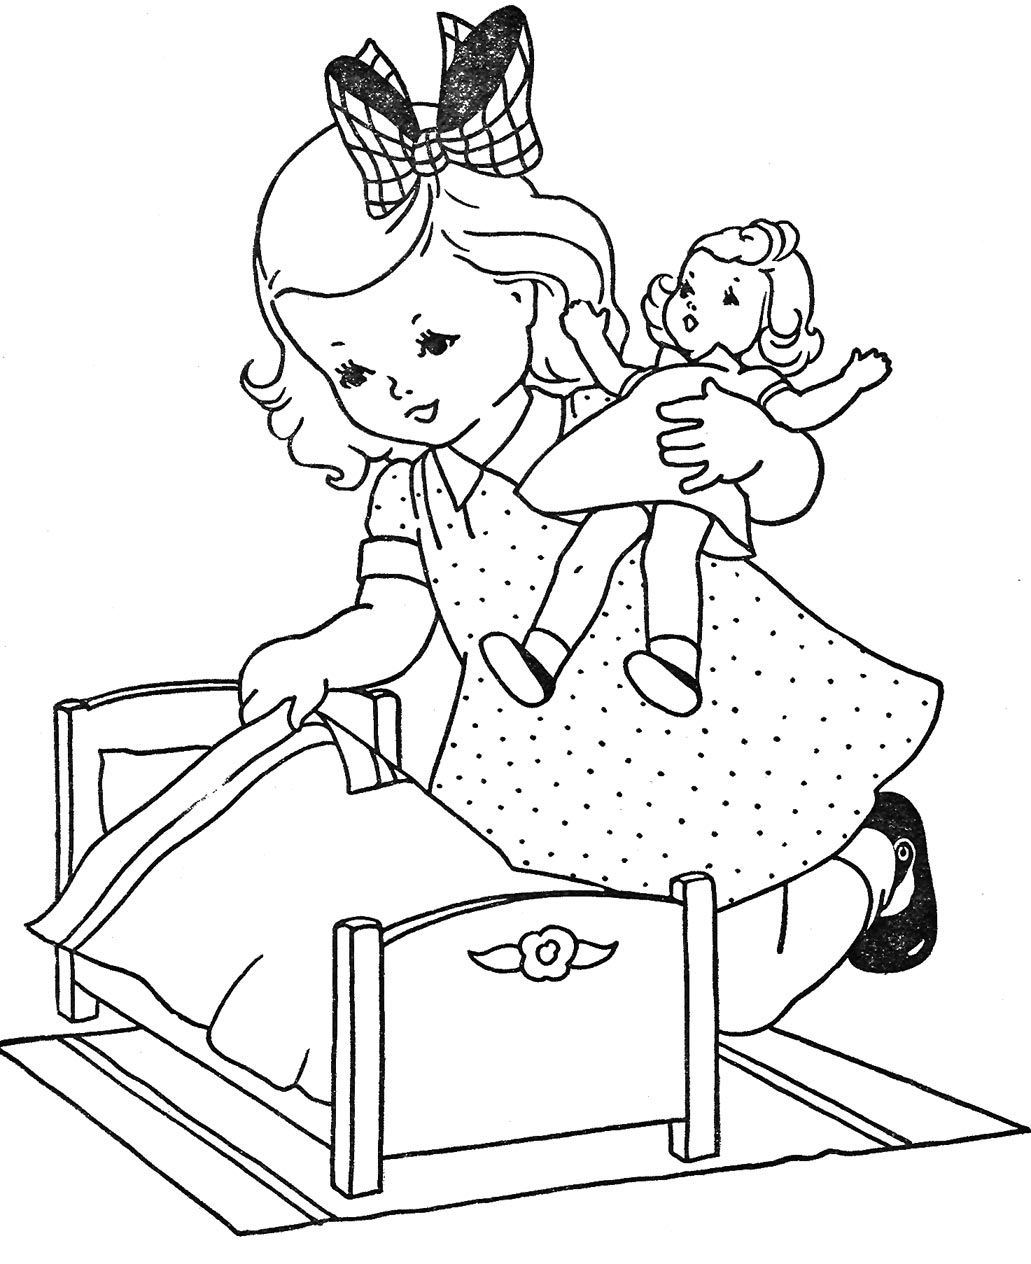 coloring pages for print doll coloring pages best coloring pages for kids for print pages coloring